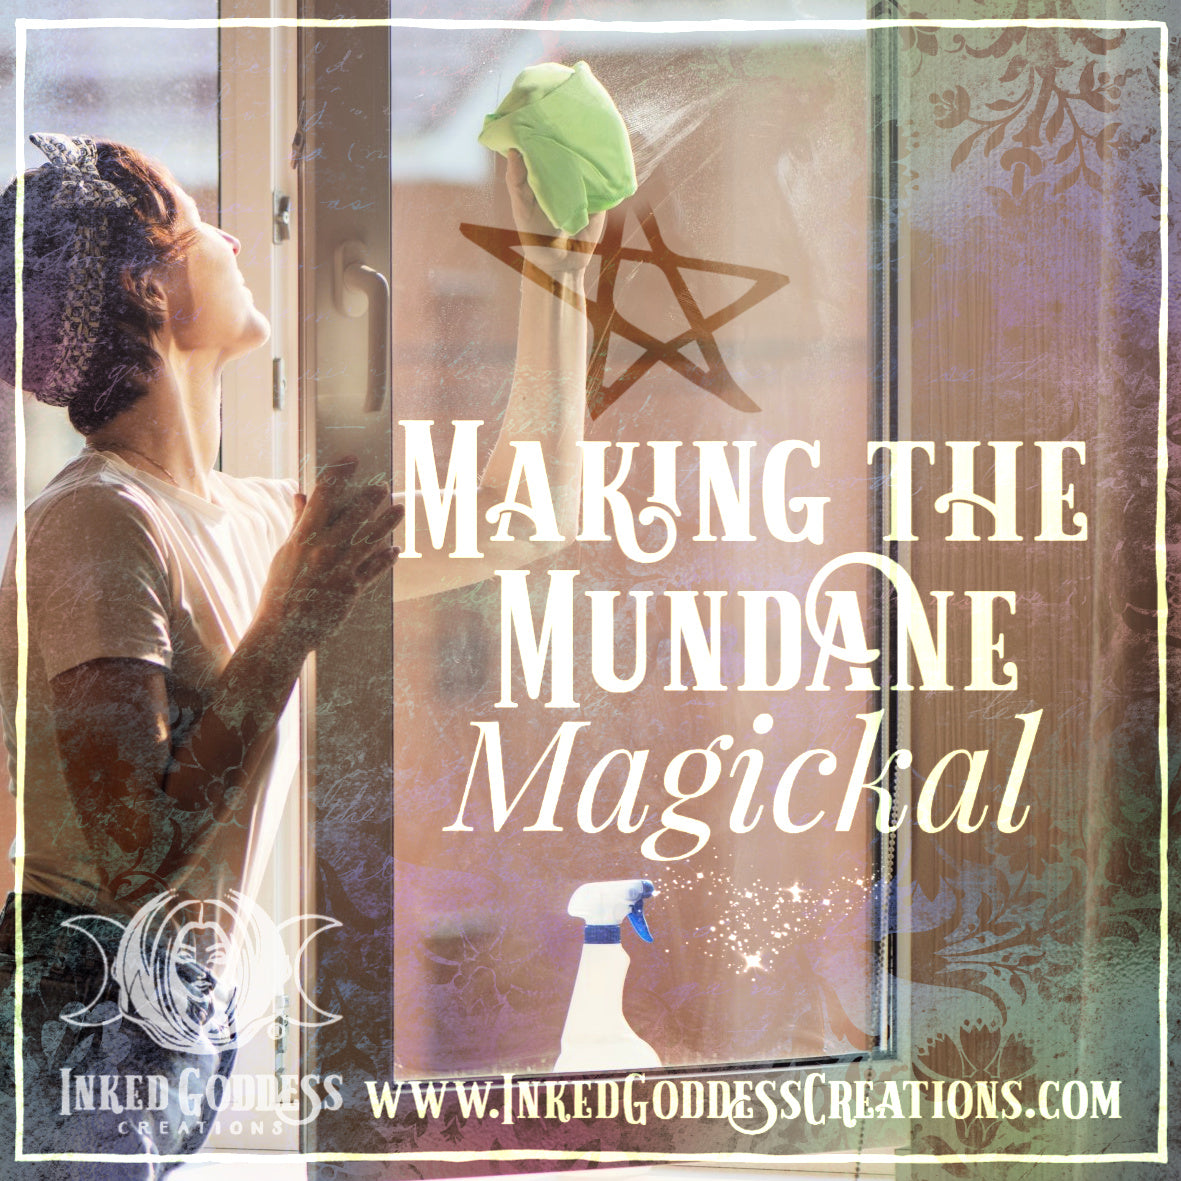 Making the Mundane Magickal